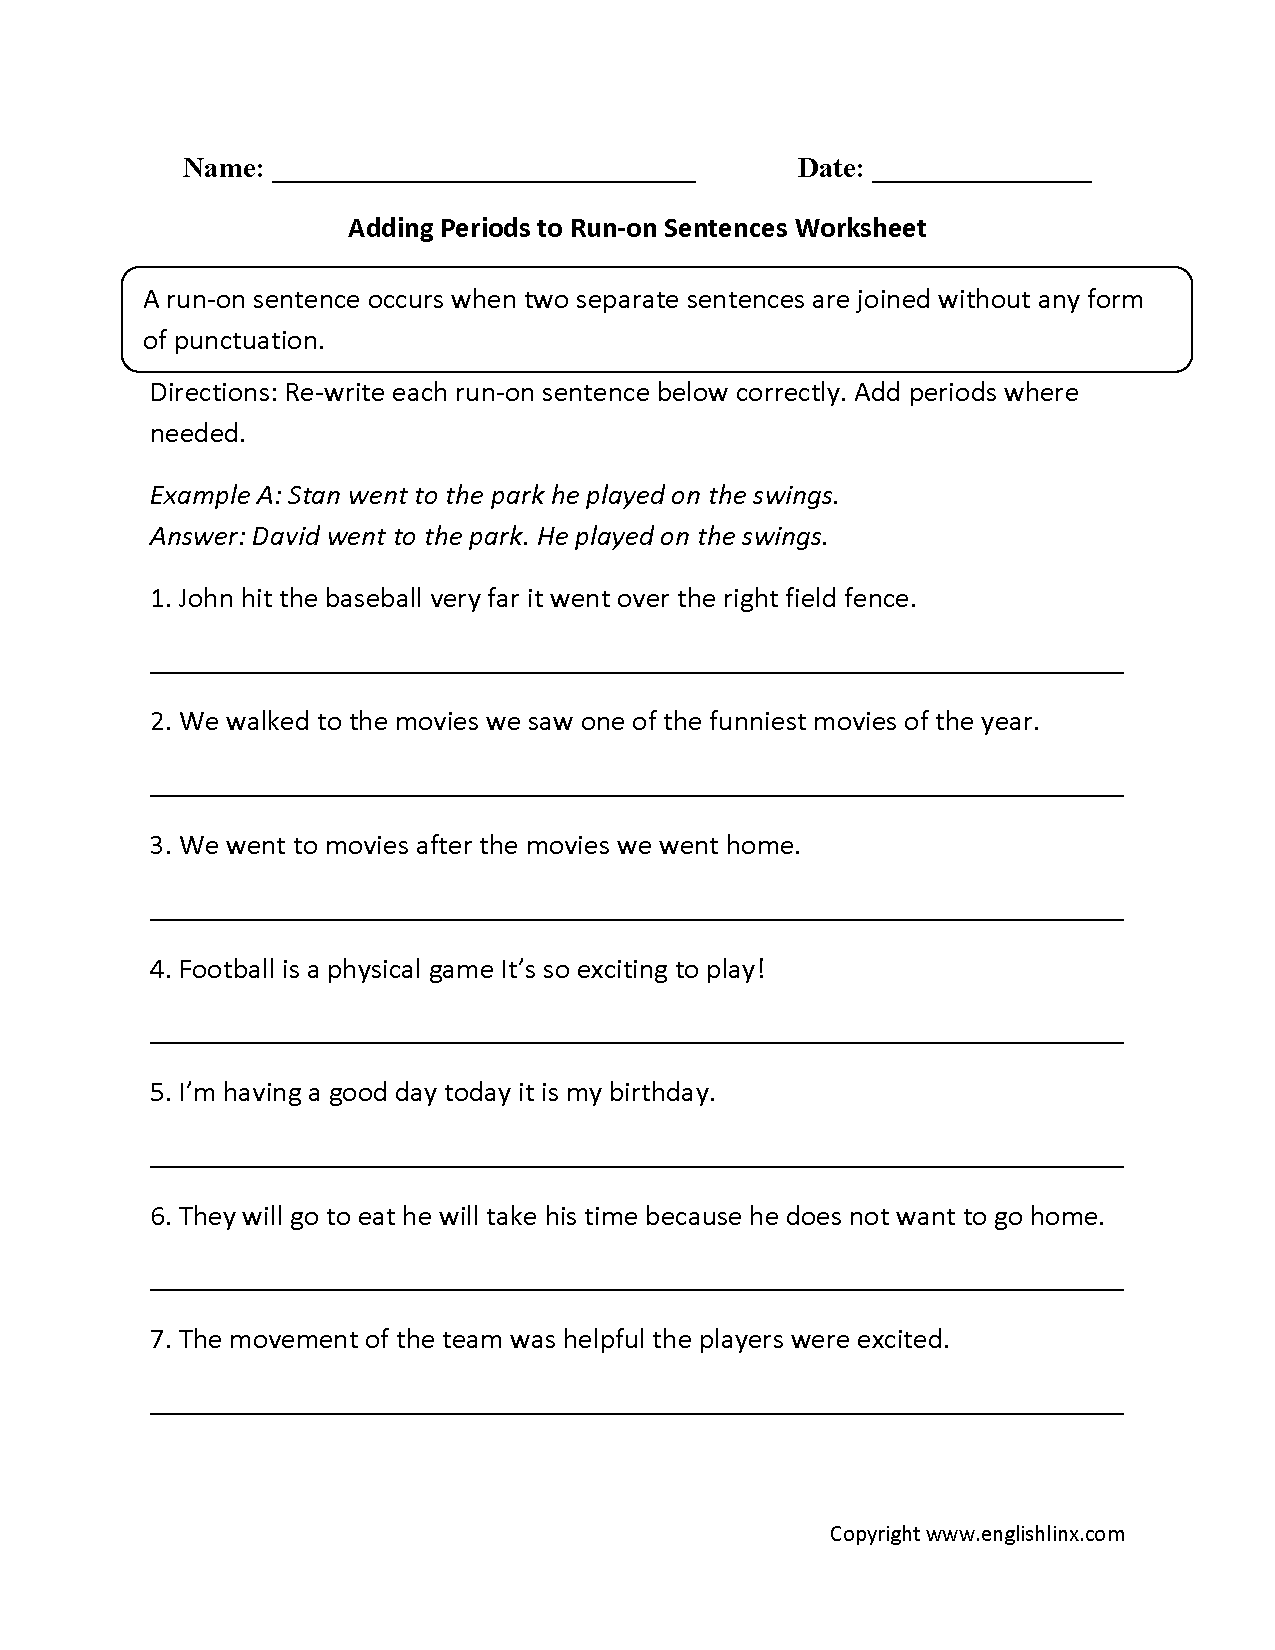 Printables Correcting Sentences Worksheets sentences worksheets run on worksheets